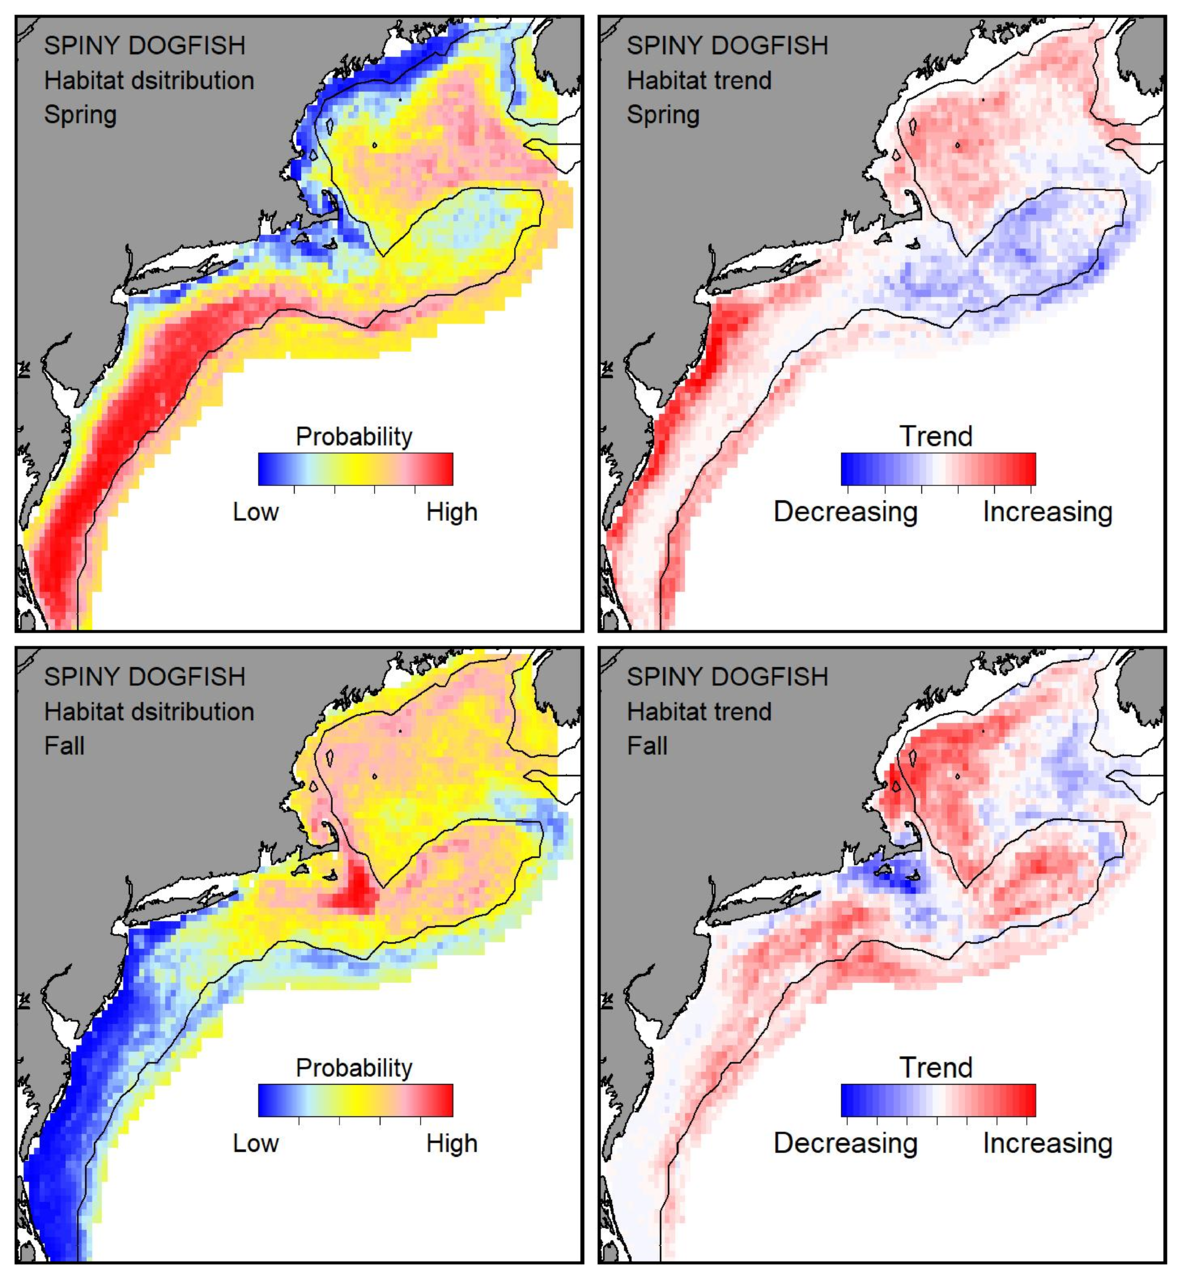 Top row: Probable habitat distribution for spiny dogfish showing the highest concentration and increasing trend in the Gulf of Maine during the spring. Bottom row: Probable habitat distribution for spiny dogfish showing the highest concentration and increasing trend in the Gulf of Maine during the fall.